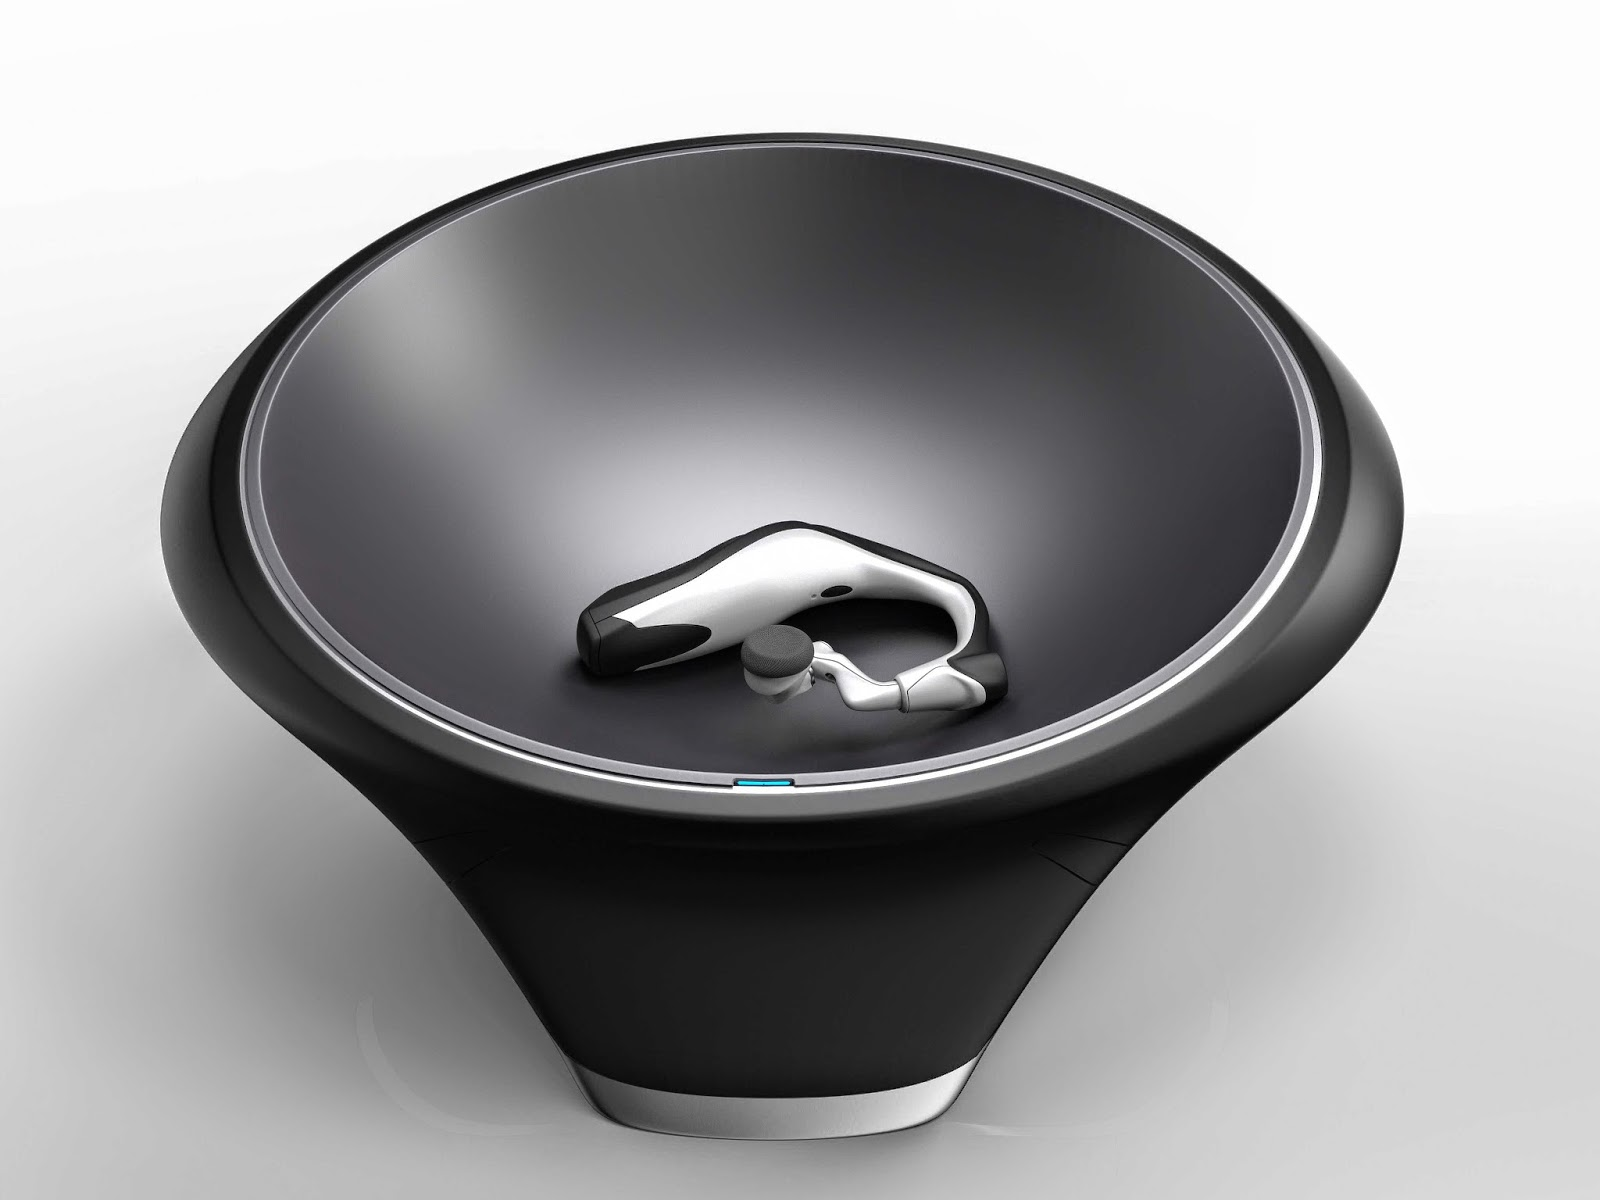 Intel Wireless Charging Bowl